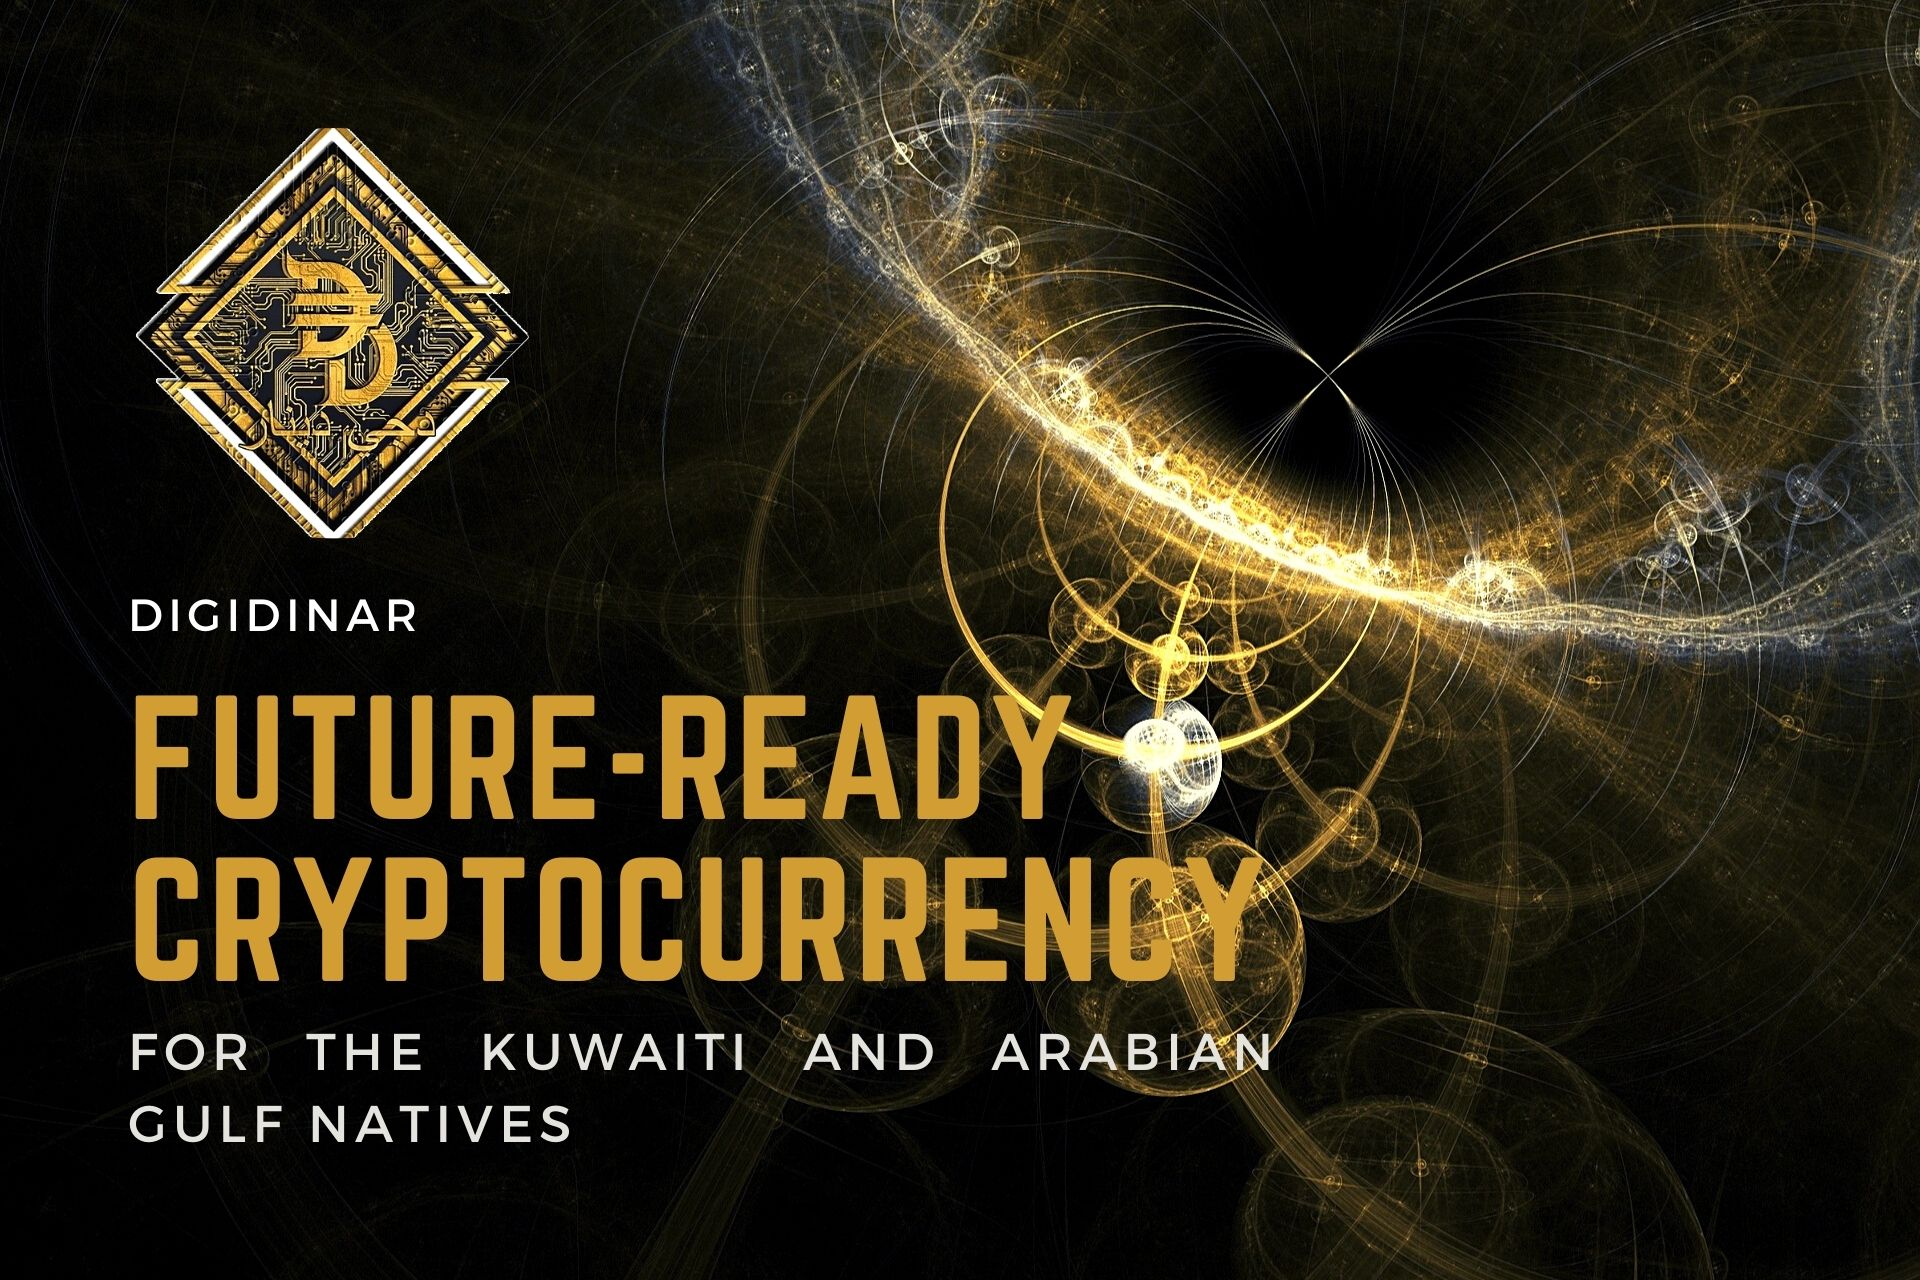 DigiDinar Future-Ready Cryptocurrency Developed For the Kuwaiti and Arabian Gulf Natives